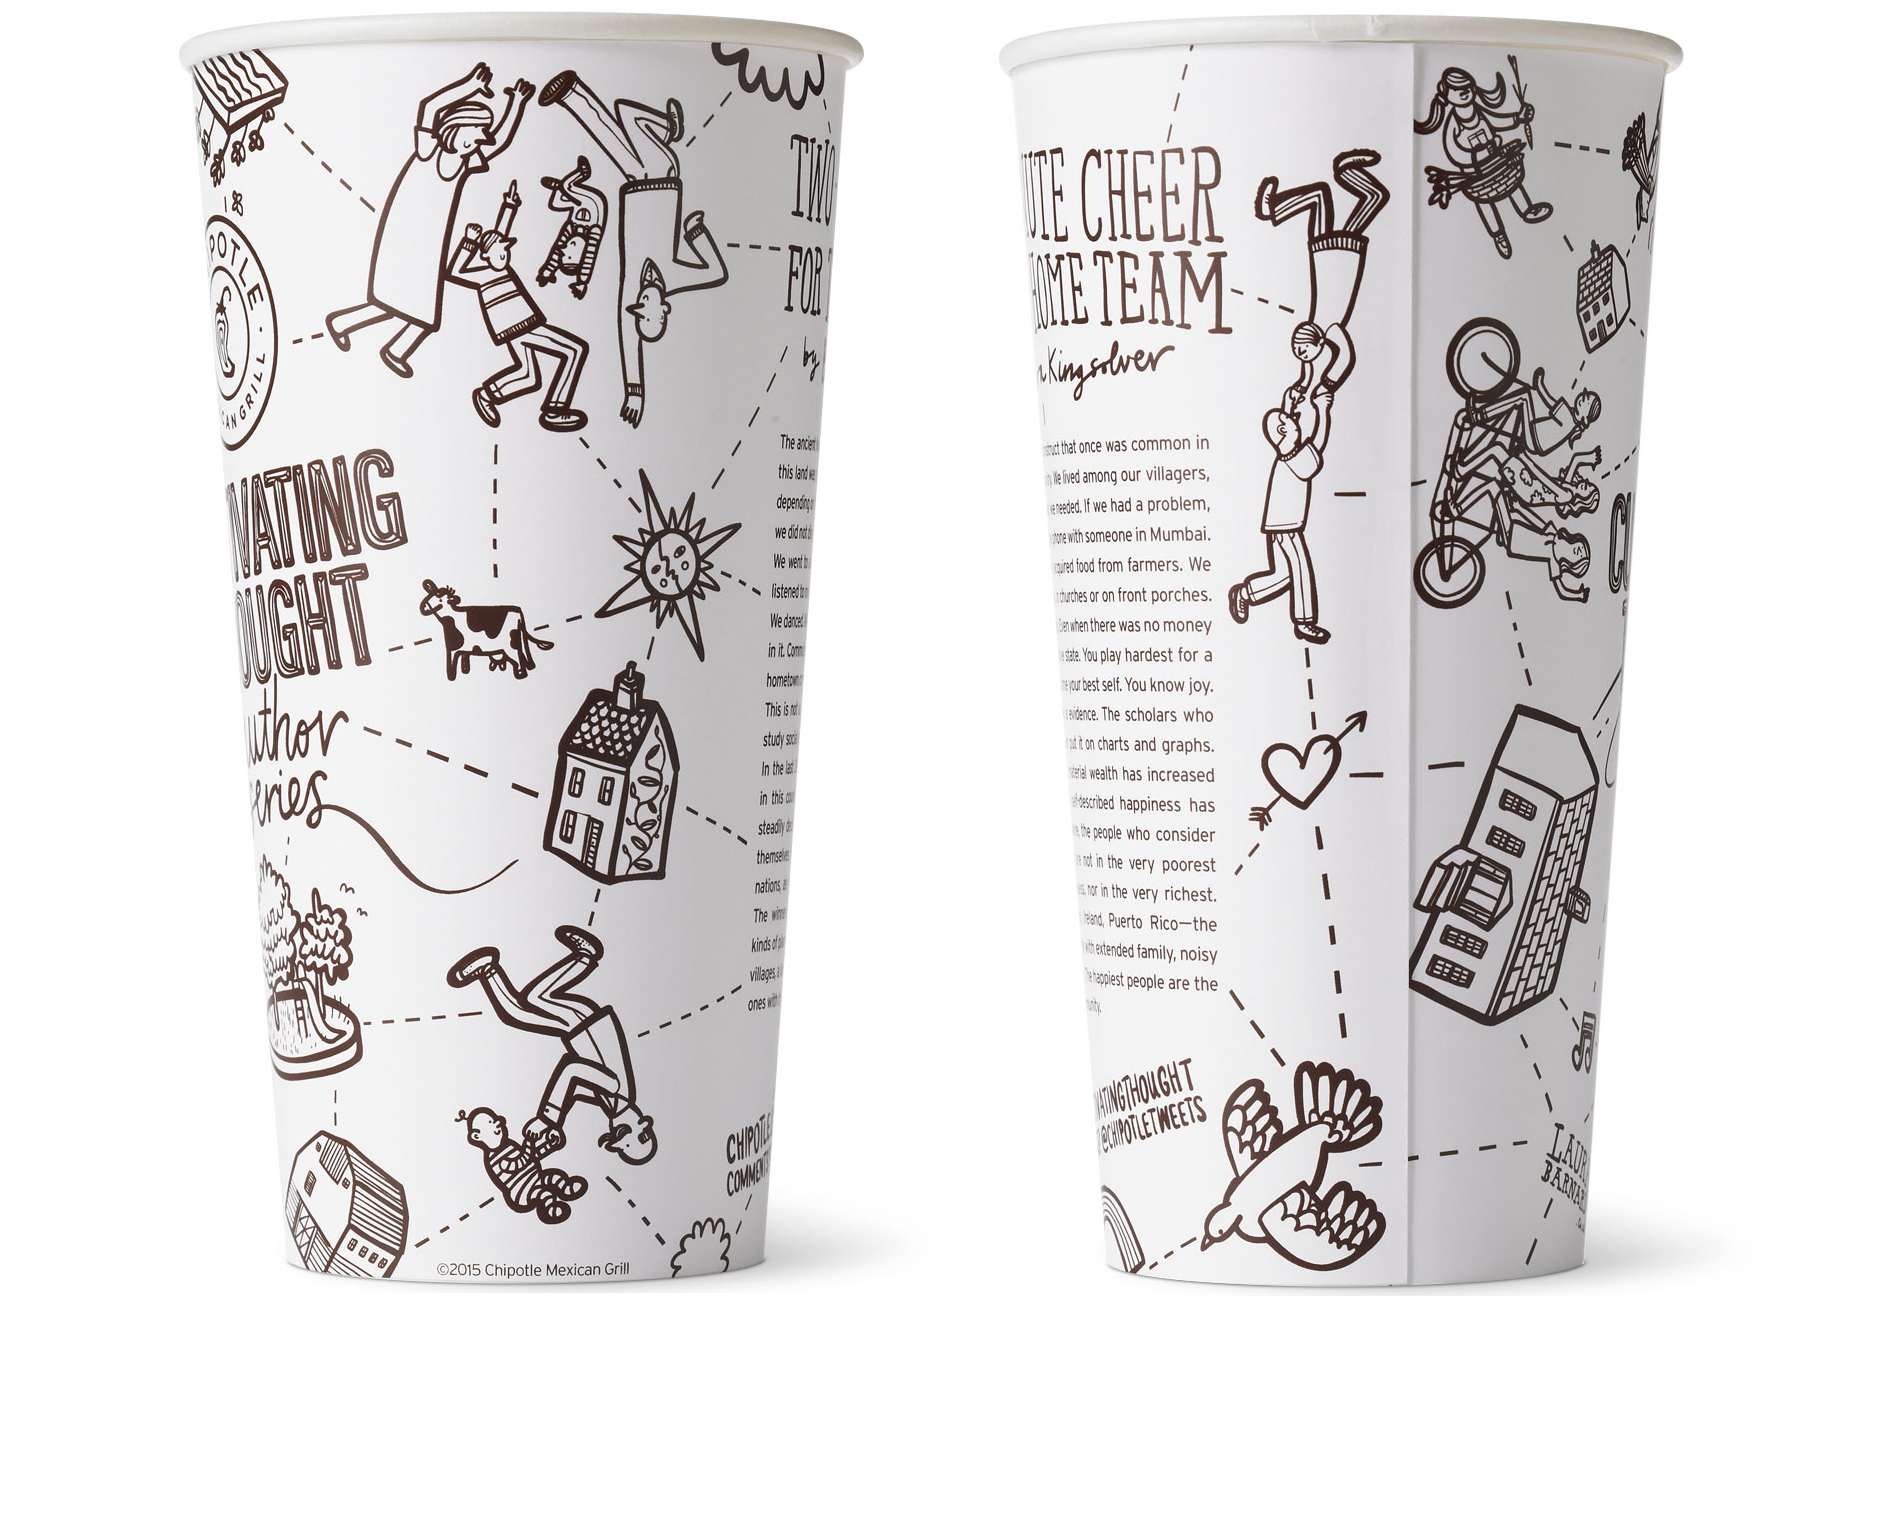 Chipotle Cup Cultivating Thought Cup 2